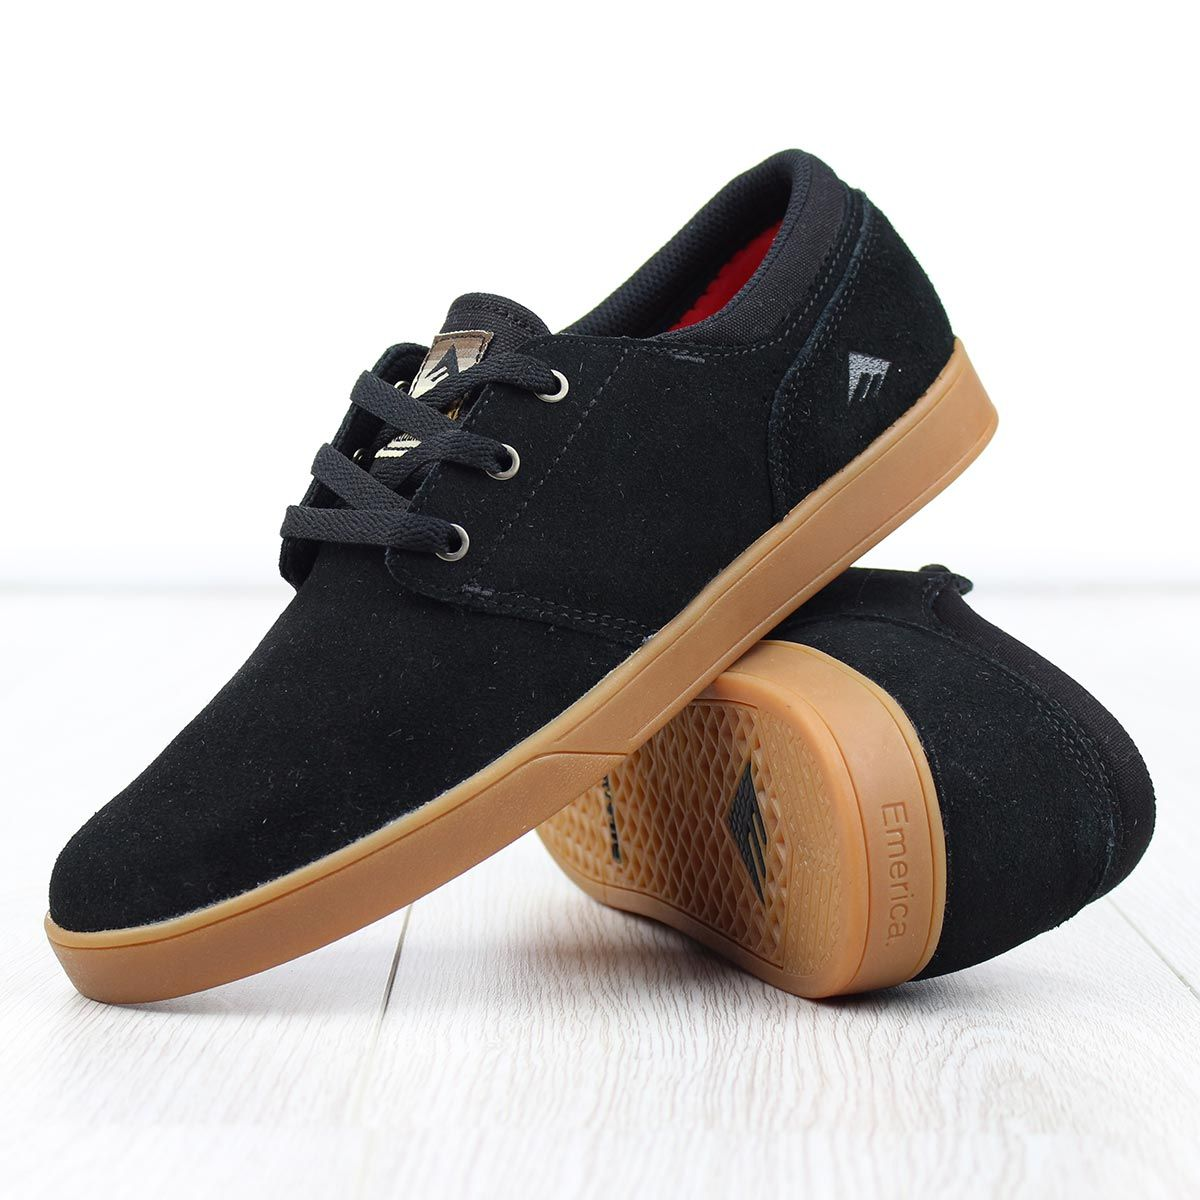 On the surface, The Figueroa from Emerica looks like a